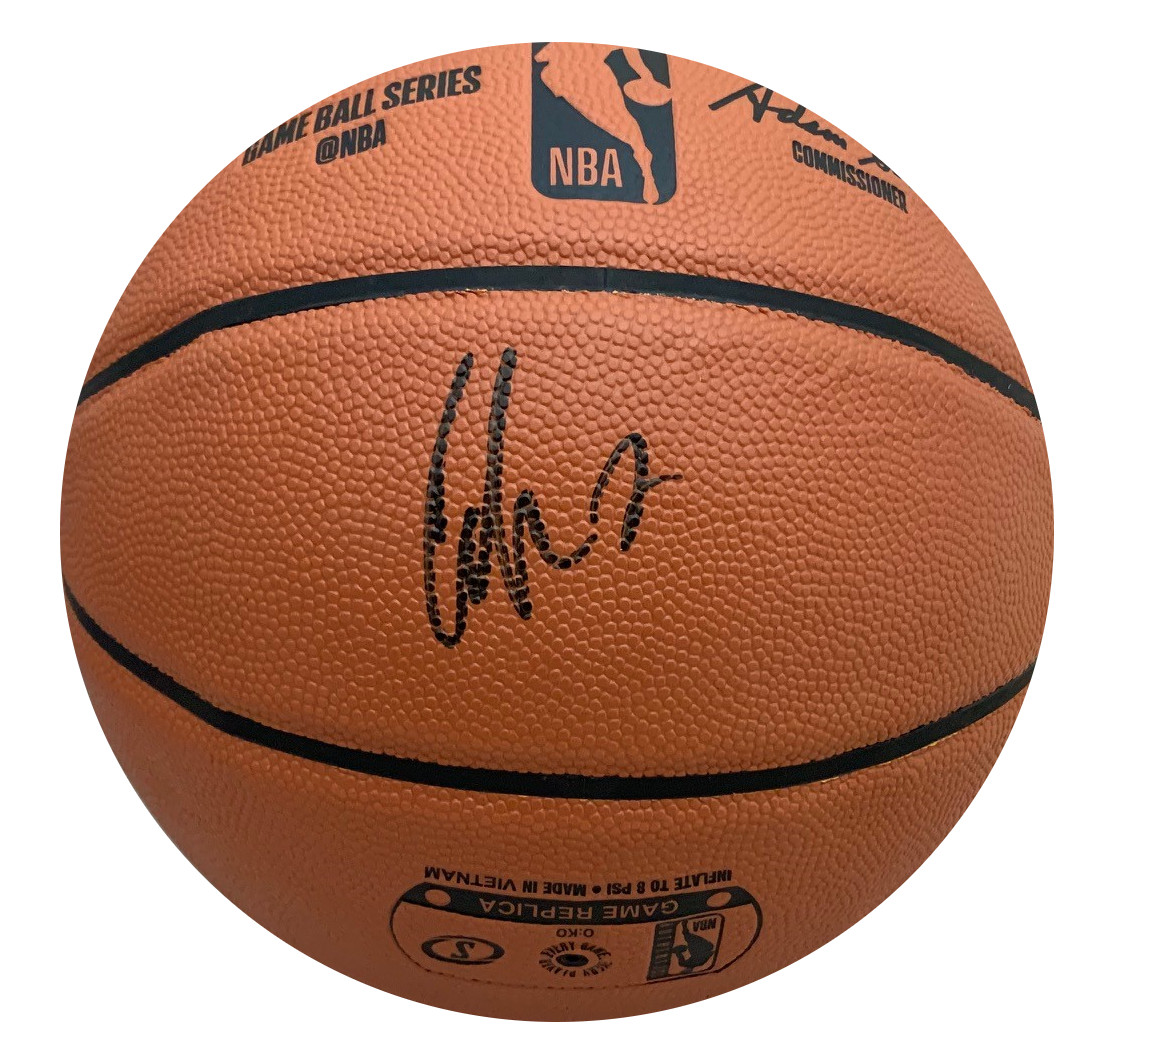 Luka Doncic Dallas Mavericks Autographed NBA Signed Basketball PSA DNA COA 4 Dallas Mavericks newest sensation Luka Doncic has autographed this officially licensed full size NBA replica game series basketball. Doncic has become a huge fan favorite due to his flashy style of play. Autograph is authenticated by PSA/DNA, the world's leading authenticator of sports autographs. Comes with their unique sticker # fixed to the item and verified on their website. Also, comes with their certificate of authenticity with same matching #.